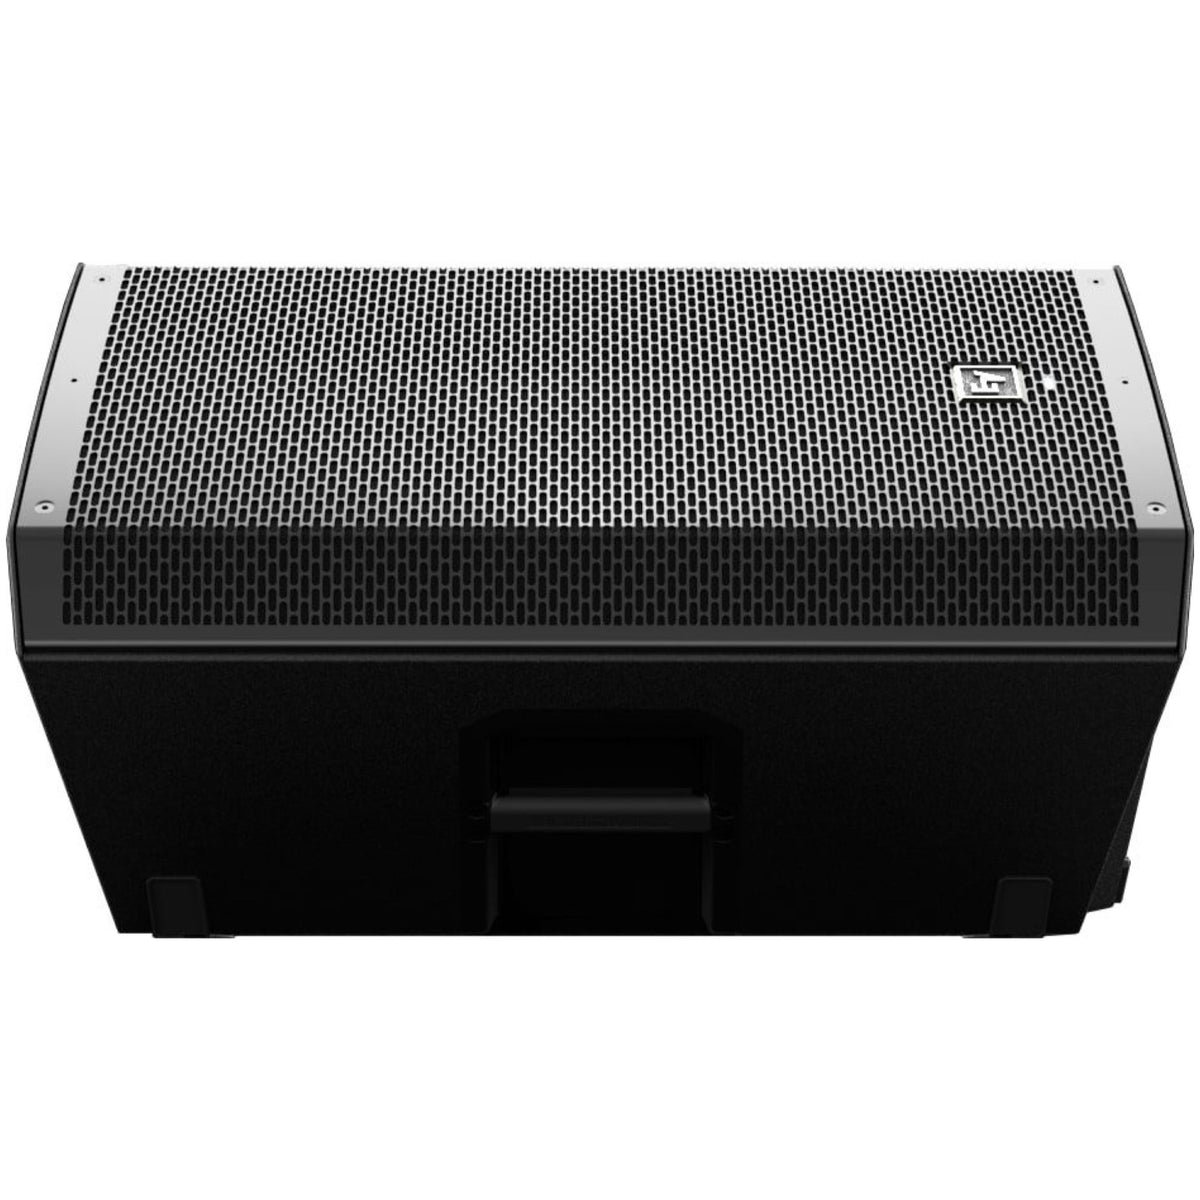 Electro-Voice ZLX-12BT Powered Bluetooth Loudspeaker (1000 Watts, 1x12 Inch), Single